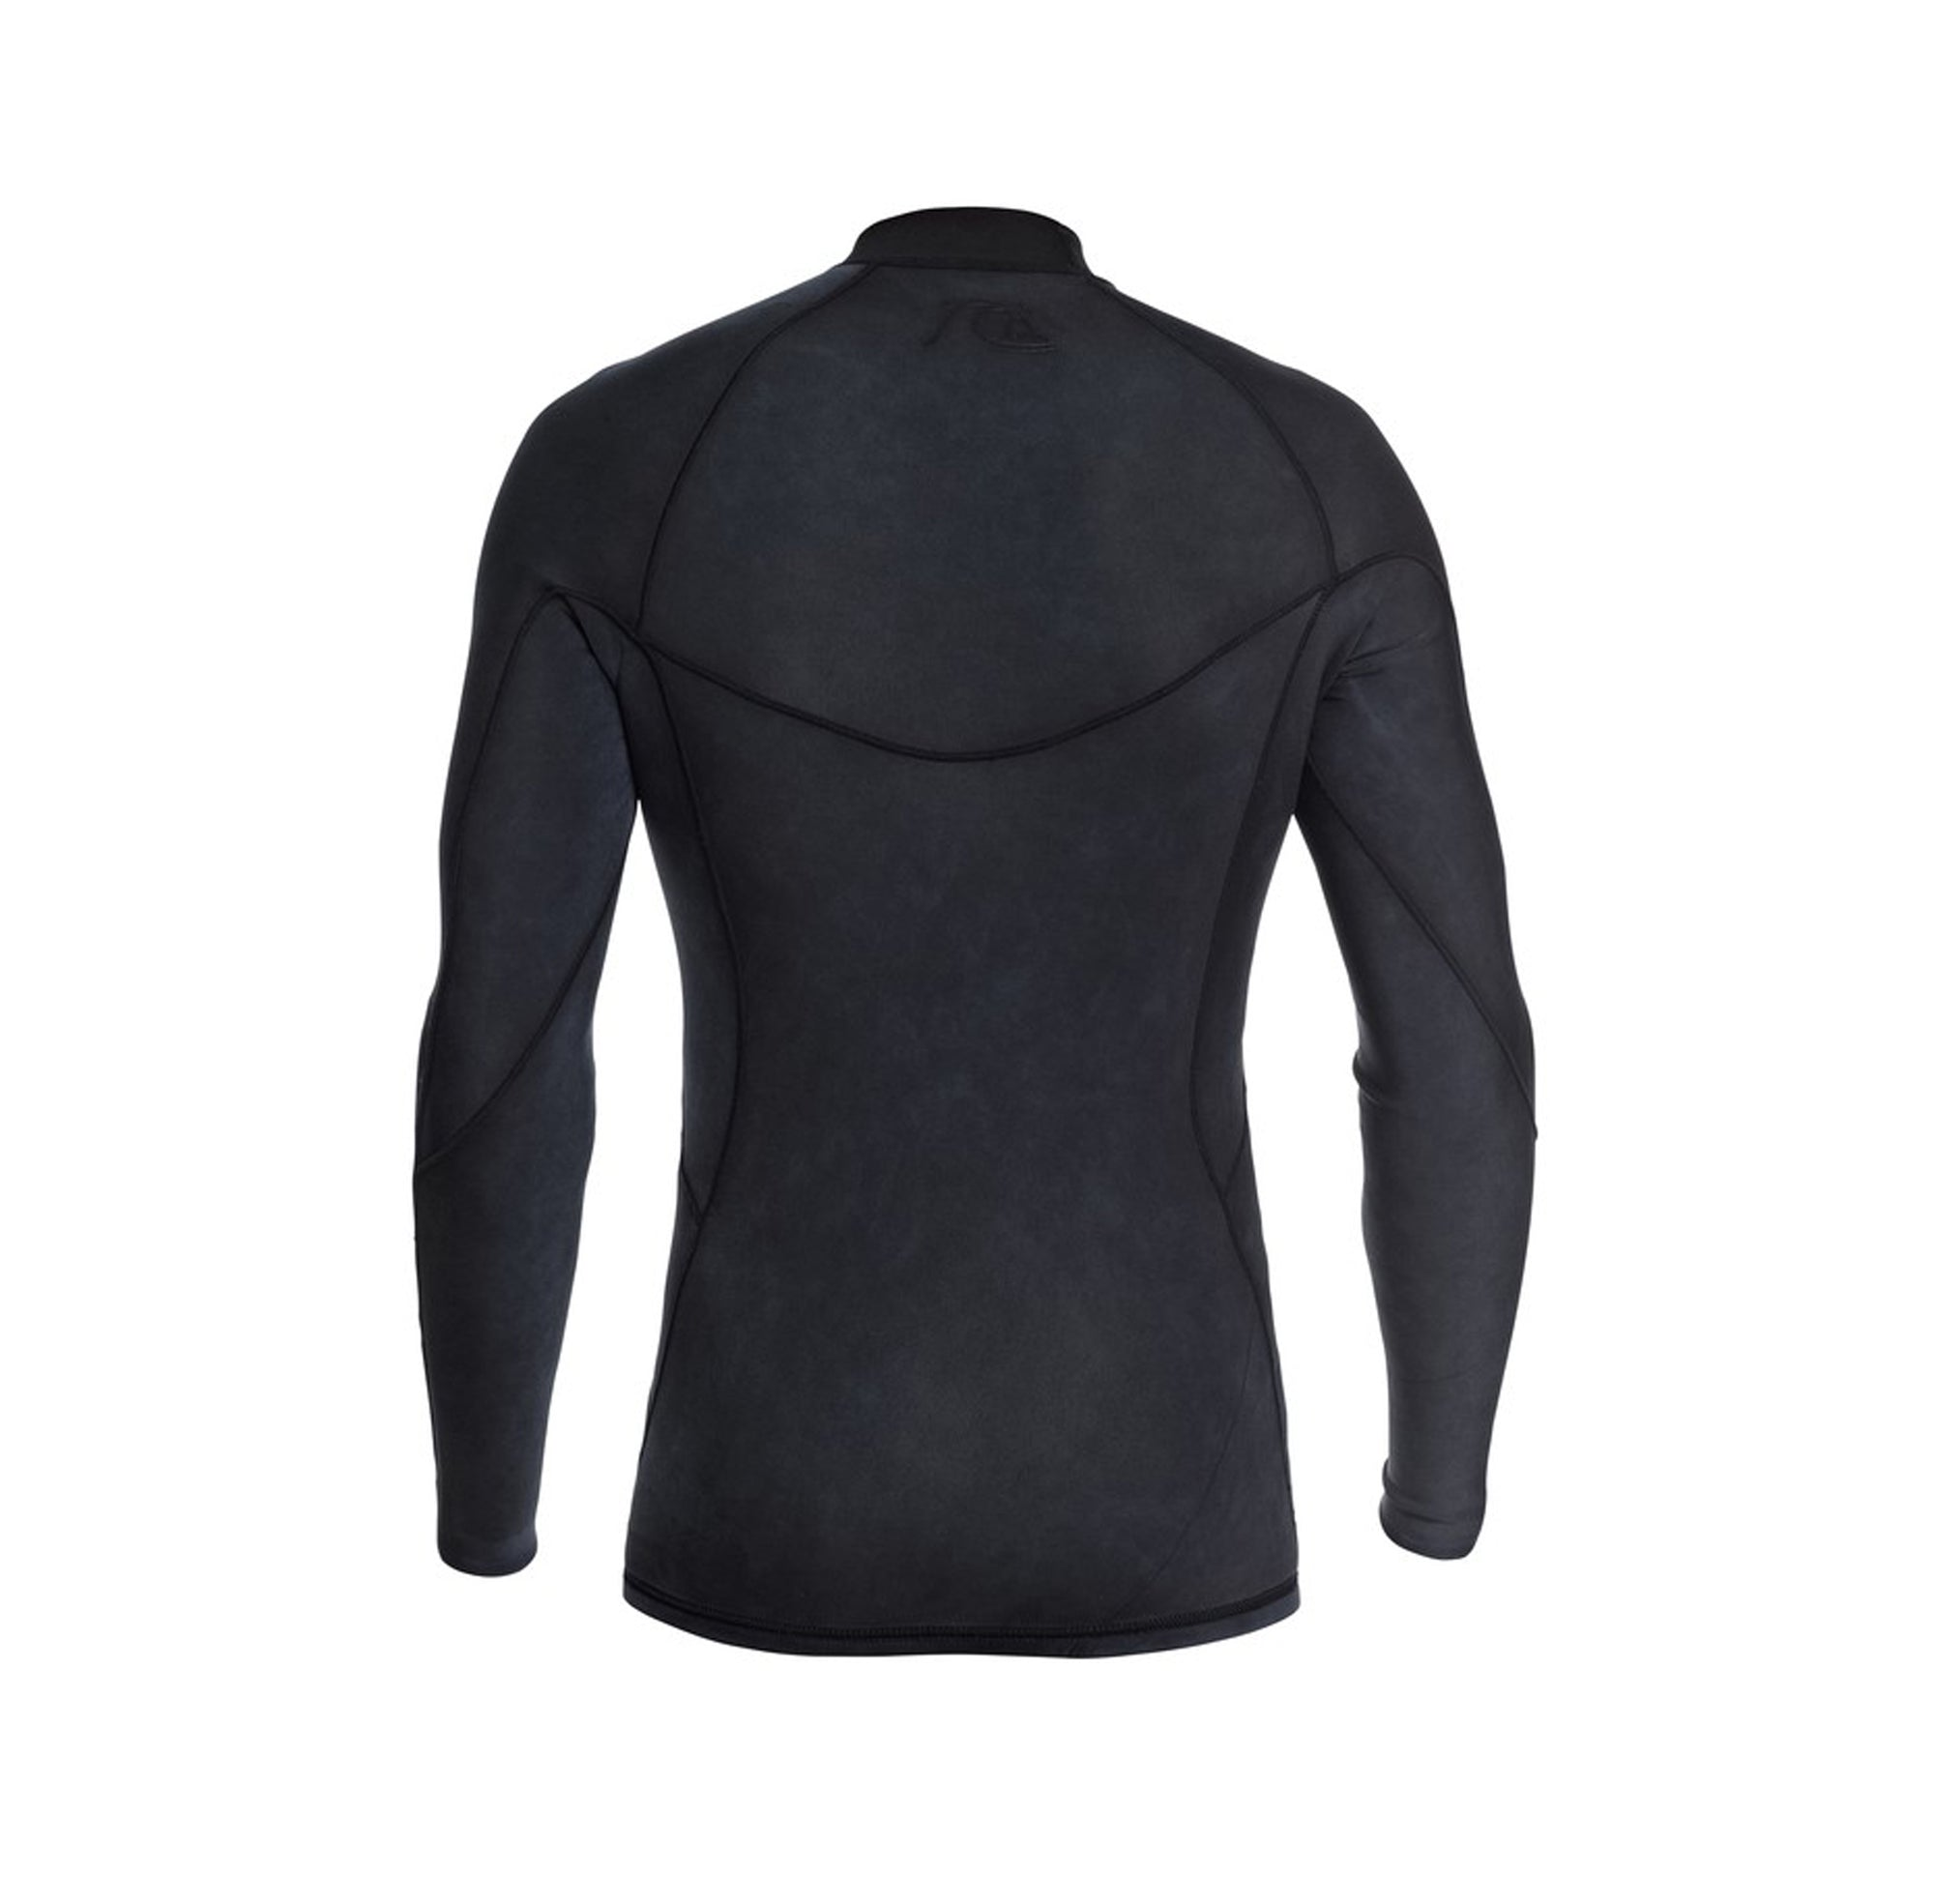 Quiksilver 1.5mm Highline Limited Monochrome Long Sleeve Neoprene Surf Top Black